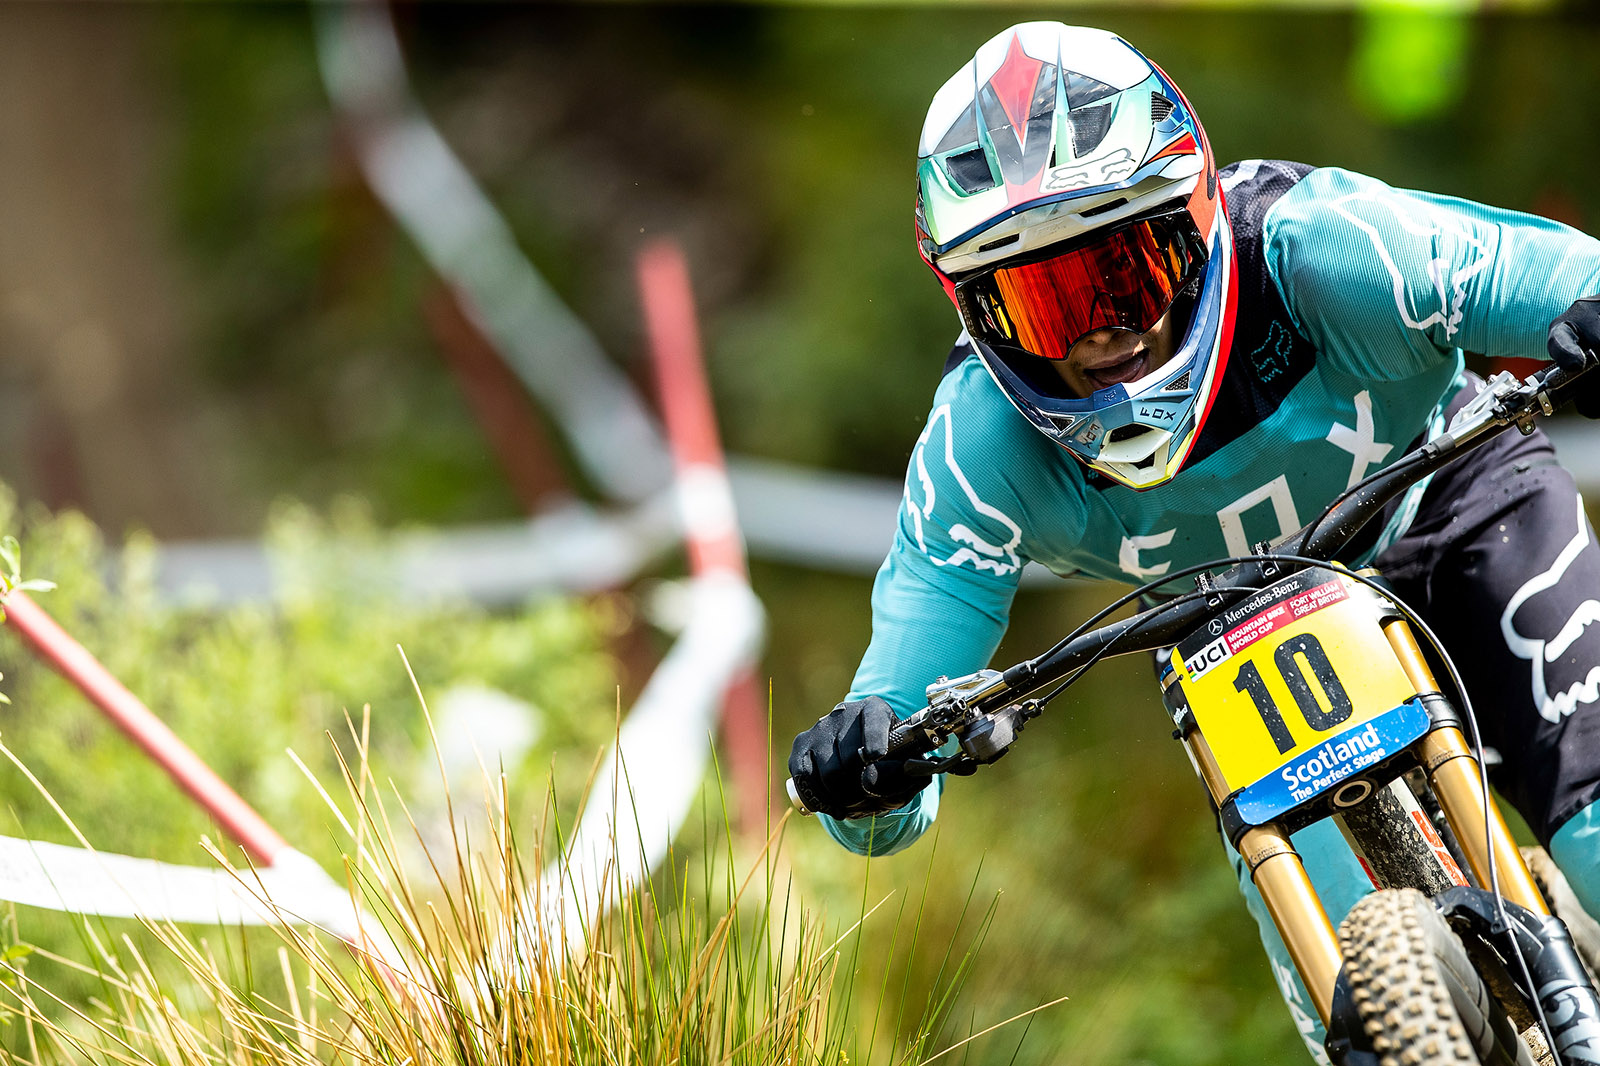 Santa Cruz Bicycles - The Syndicate's Loris Vergier on His Way to Second at the Fort William World Cup Downhill